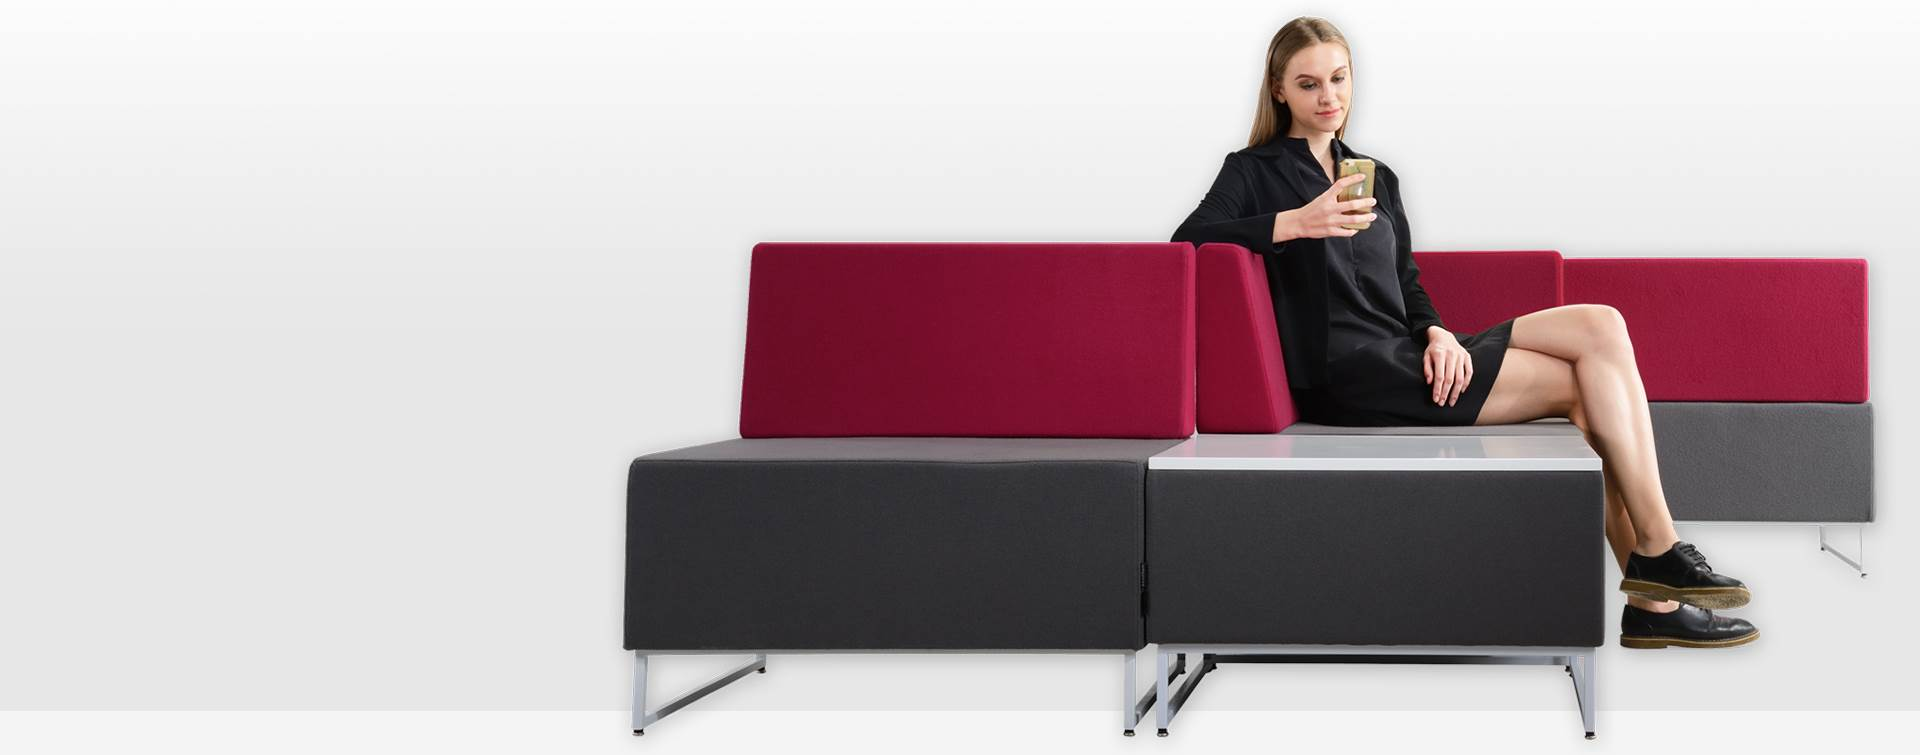 Jual Sofa Online Jakarta Benithem High Quality Ergonomic Chair Executive Office Furniture